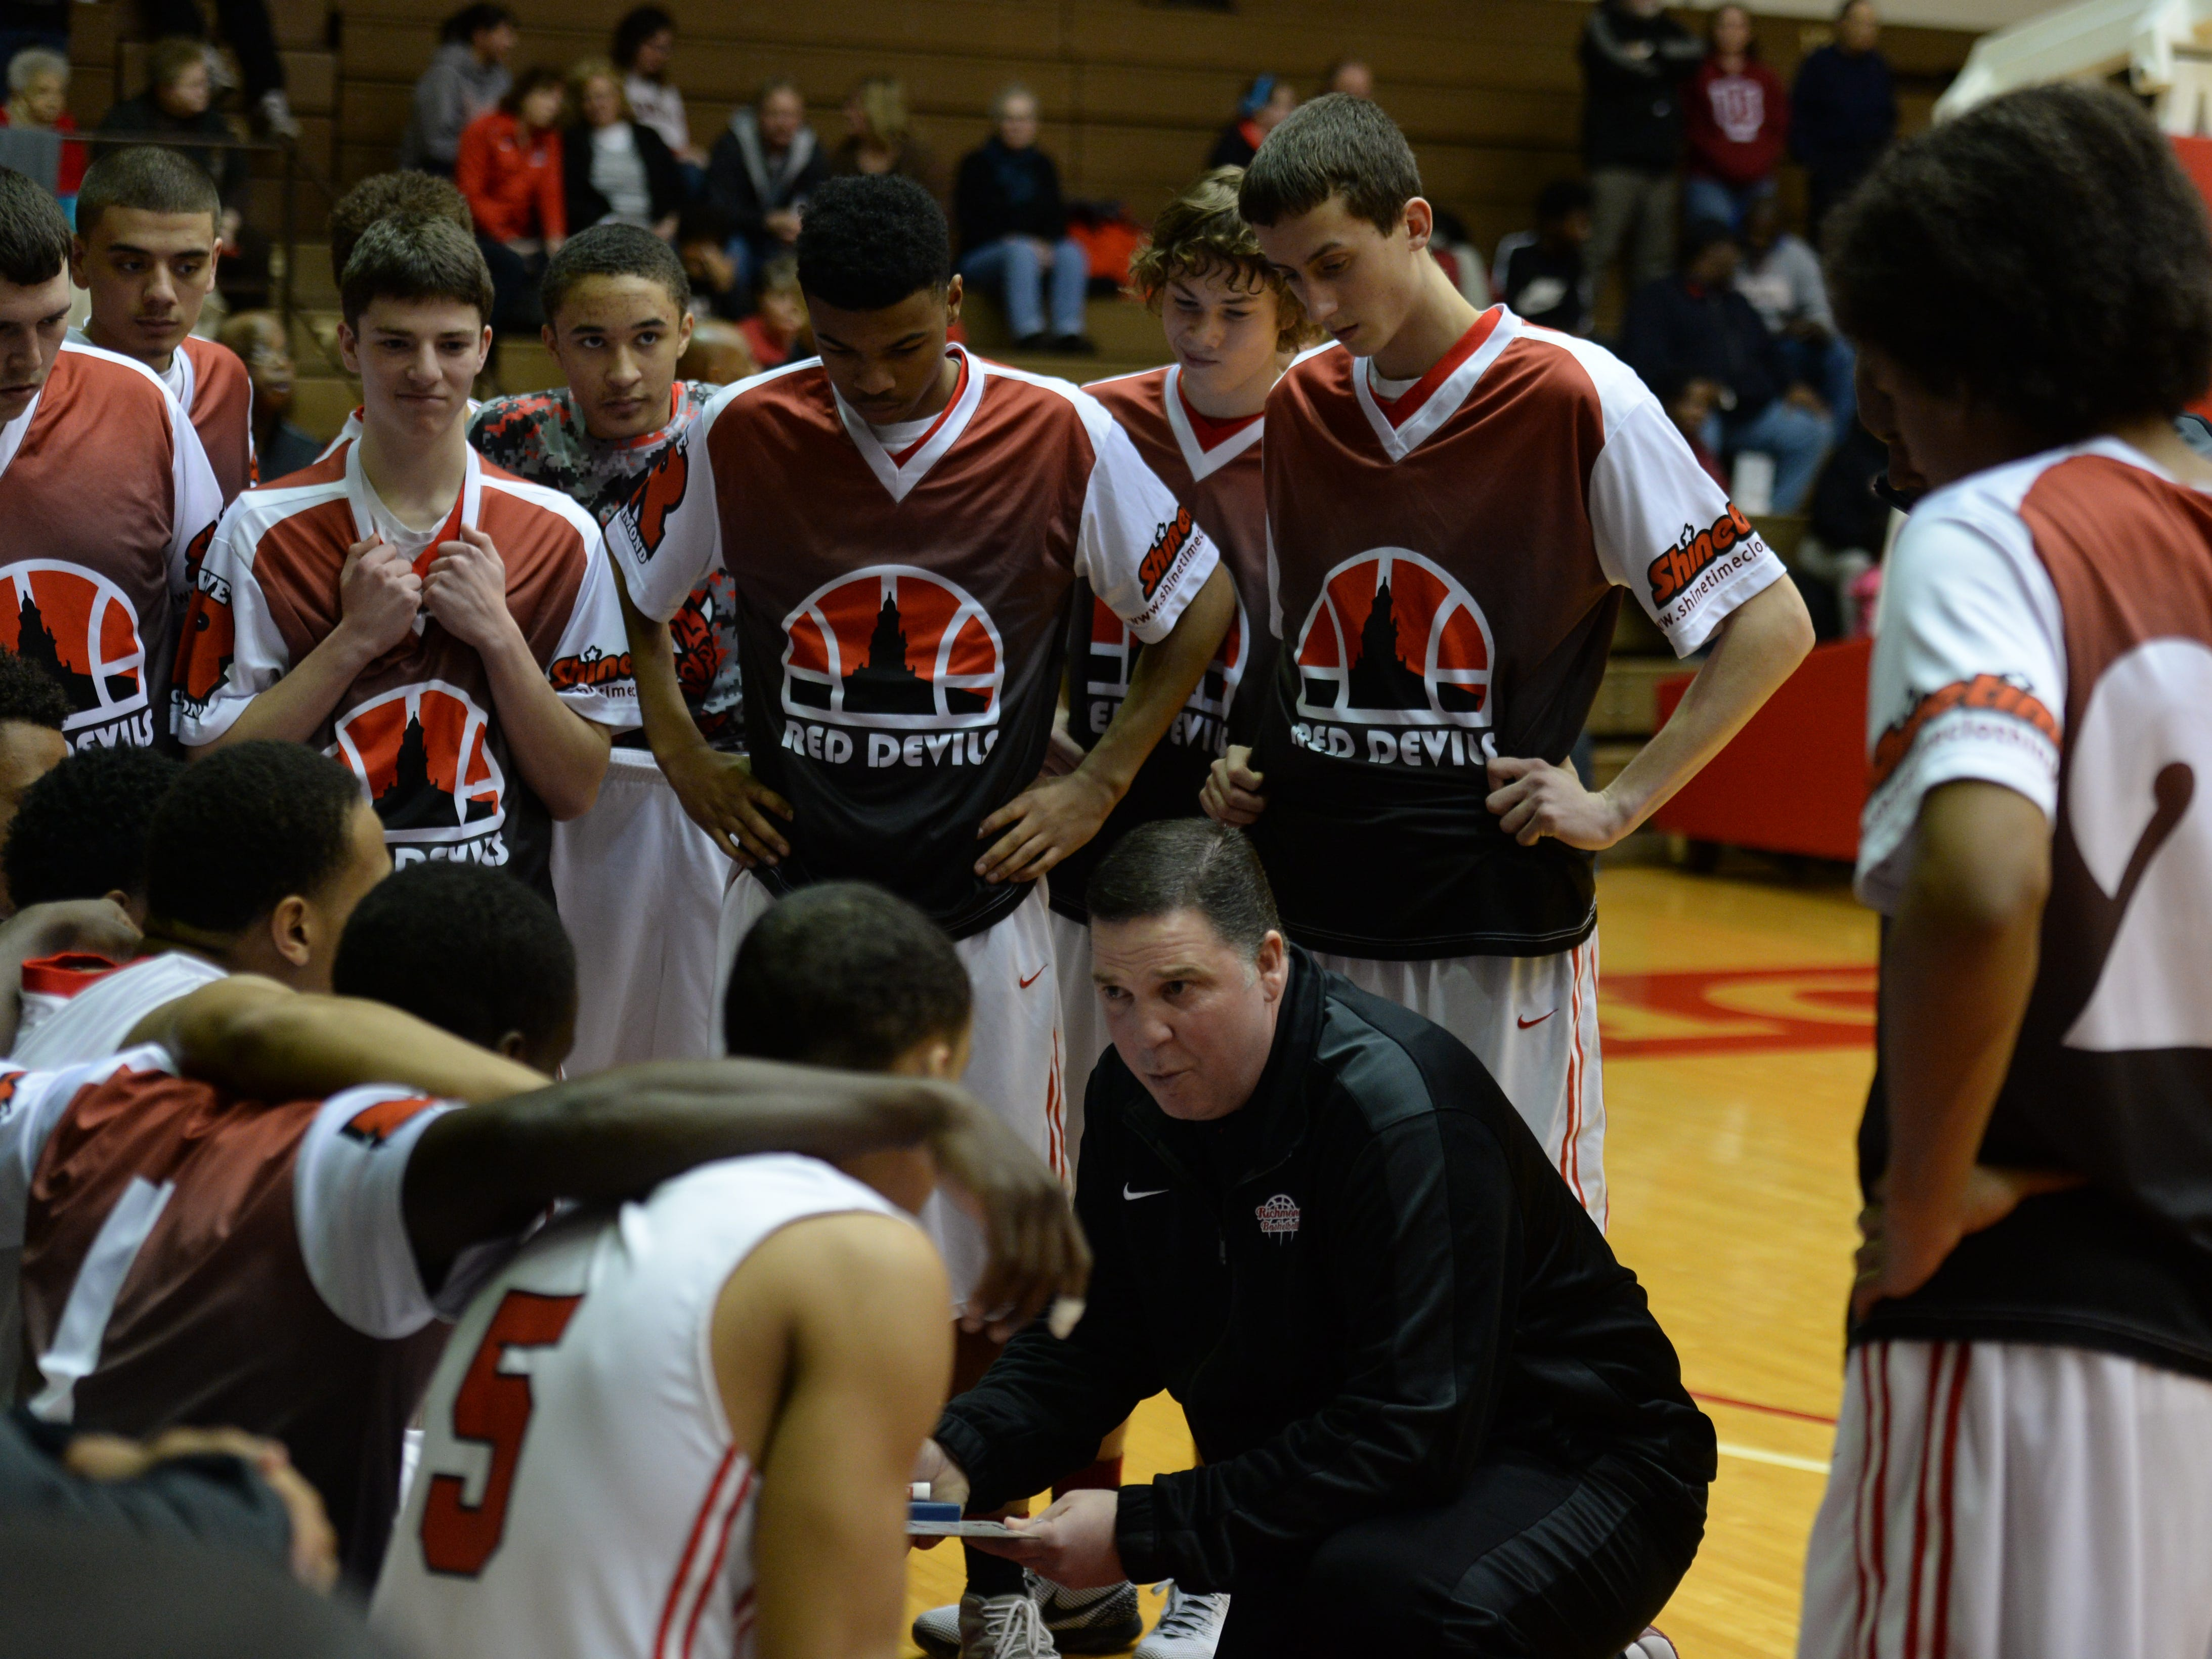 Richmond coach Joe Luce gives the team instructions before a game this season at Tiernan Center. Luce earned an Indiana Coach of the Year honor on Thursday.